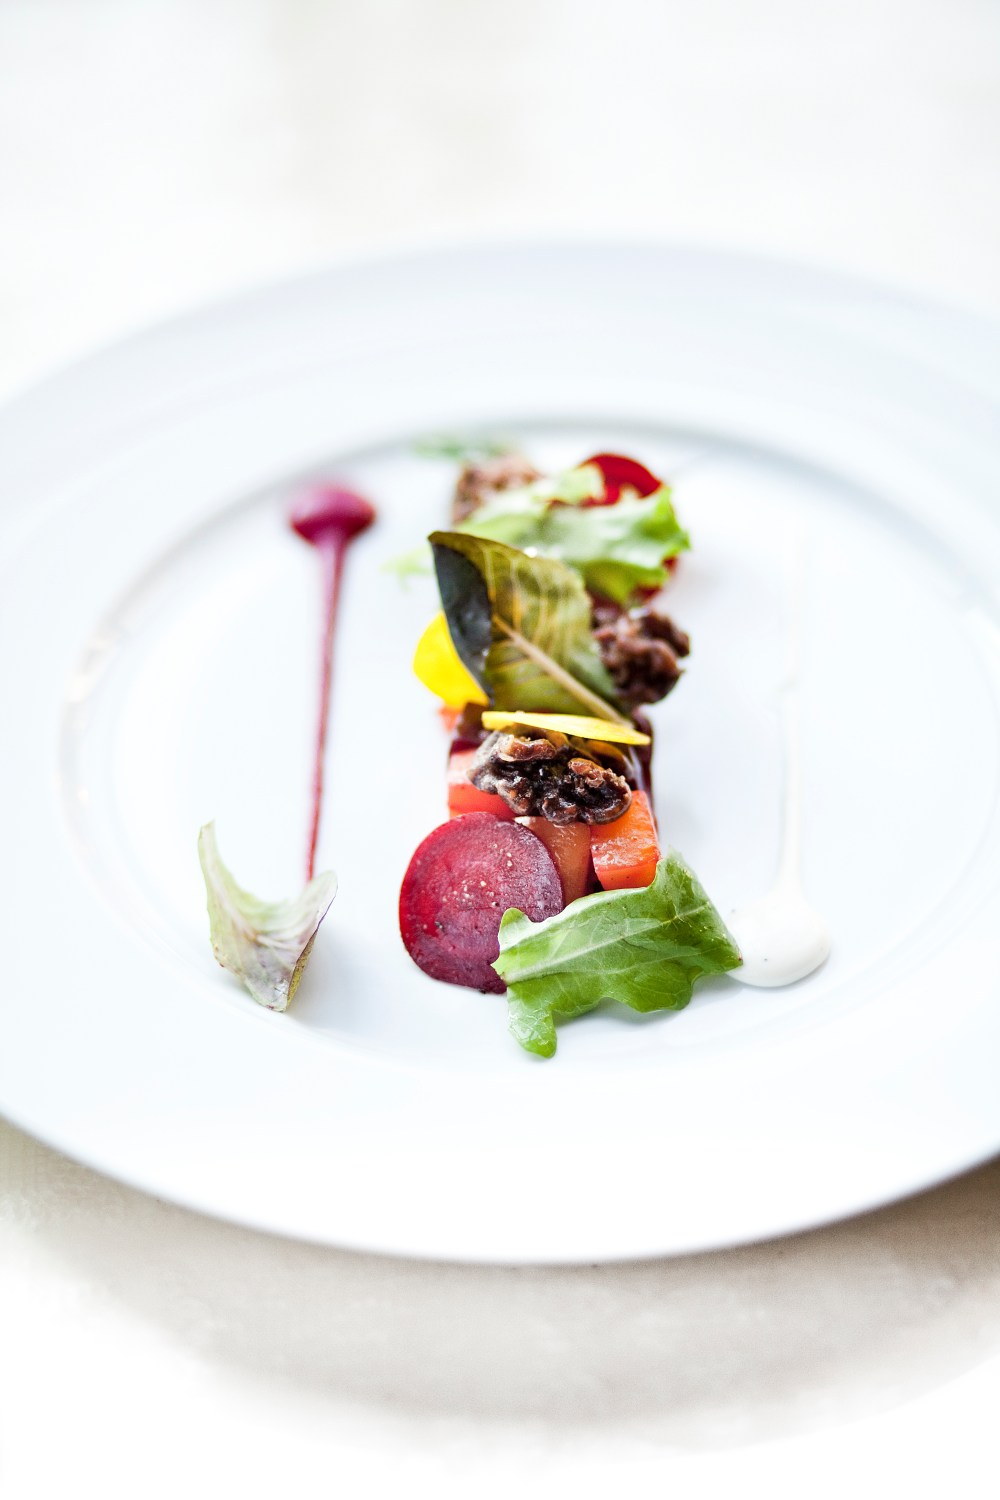 FOOD_ADOUR∏Pierre Monetta